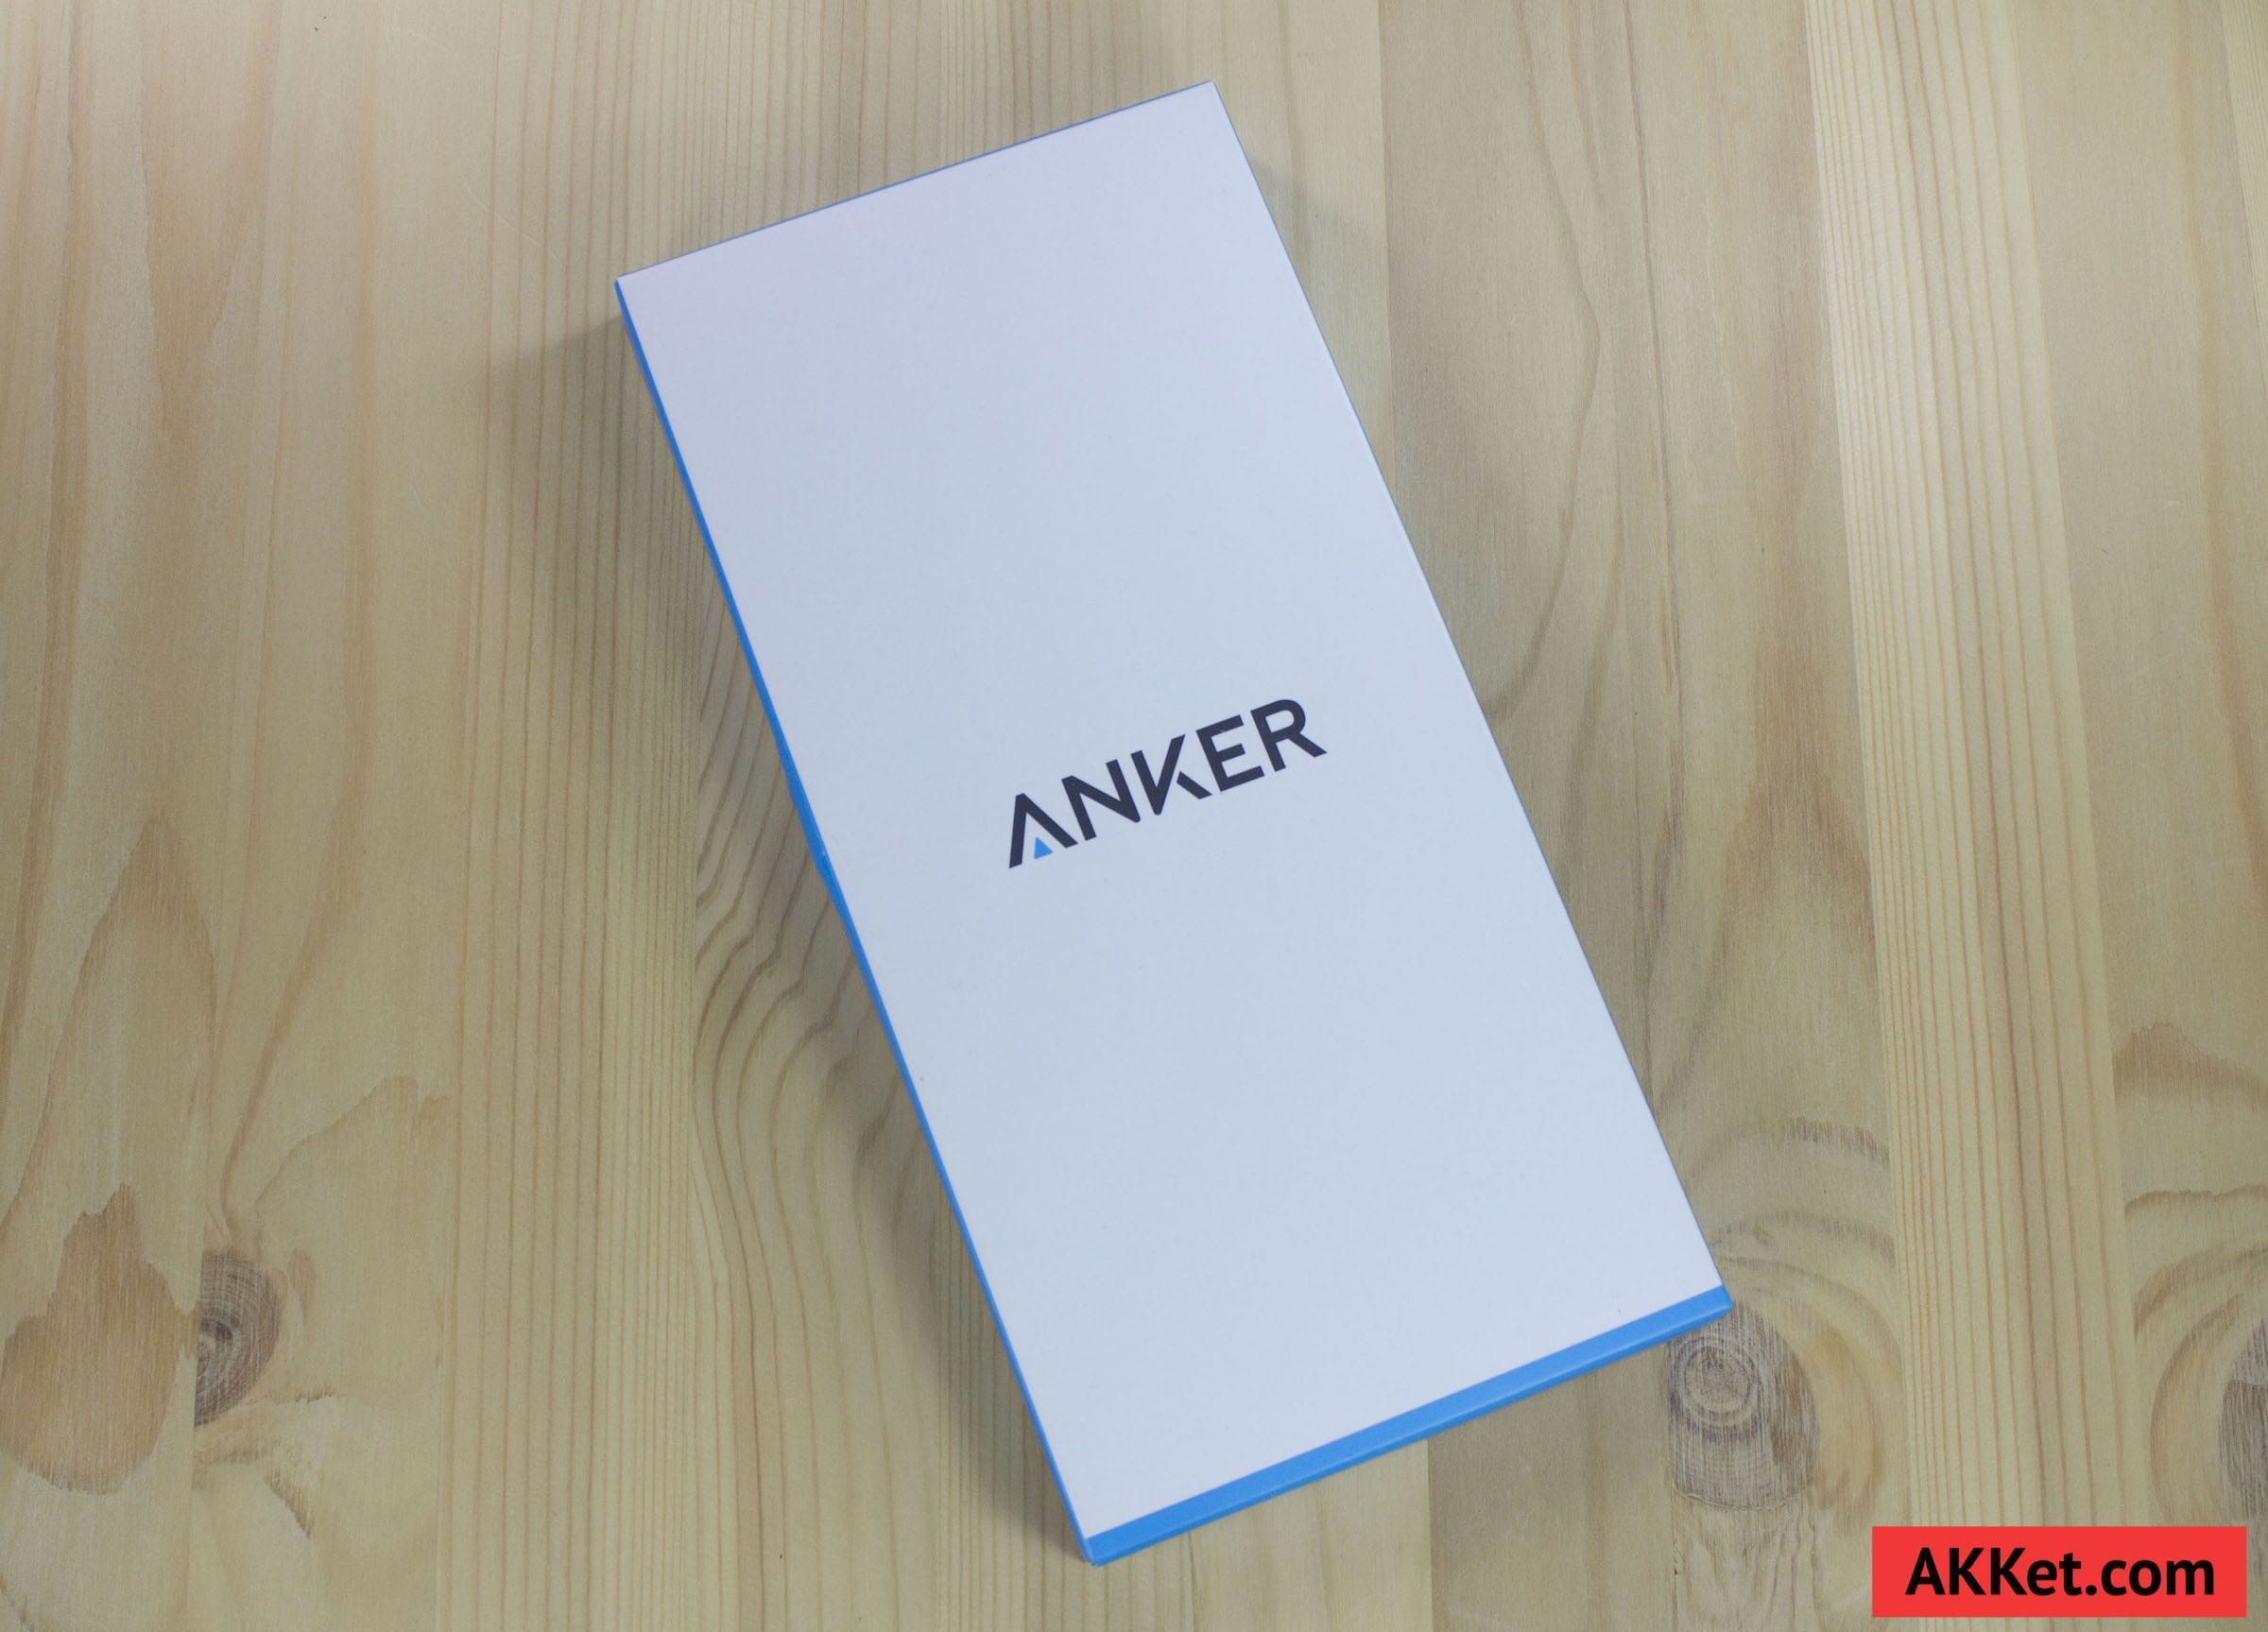 Anker Waterproof Case 1